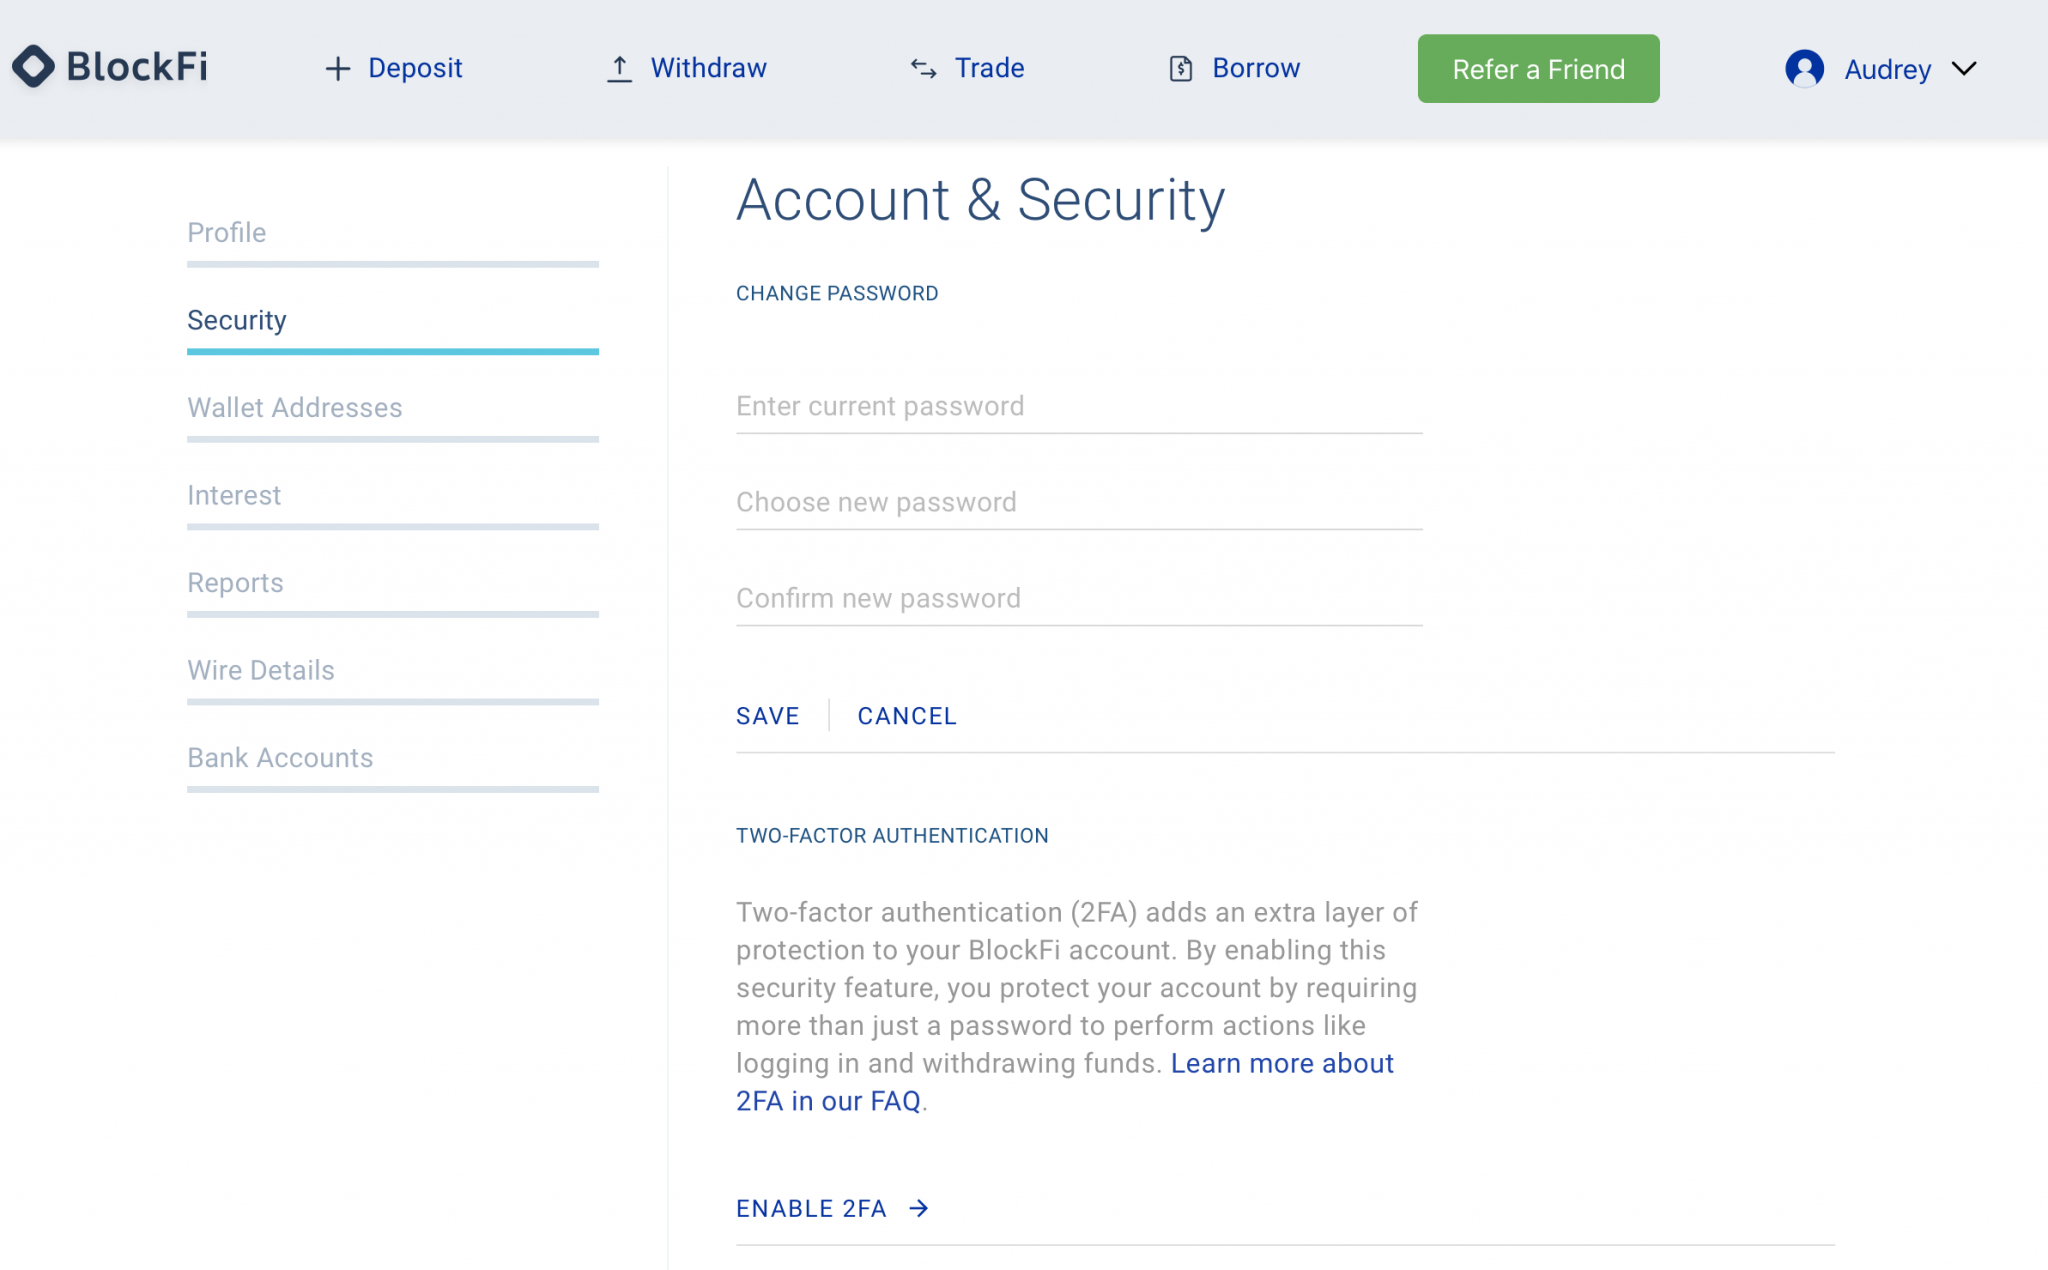 BlockFi security settings